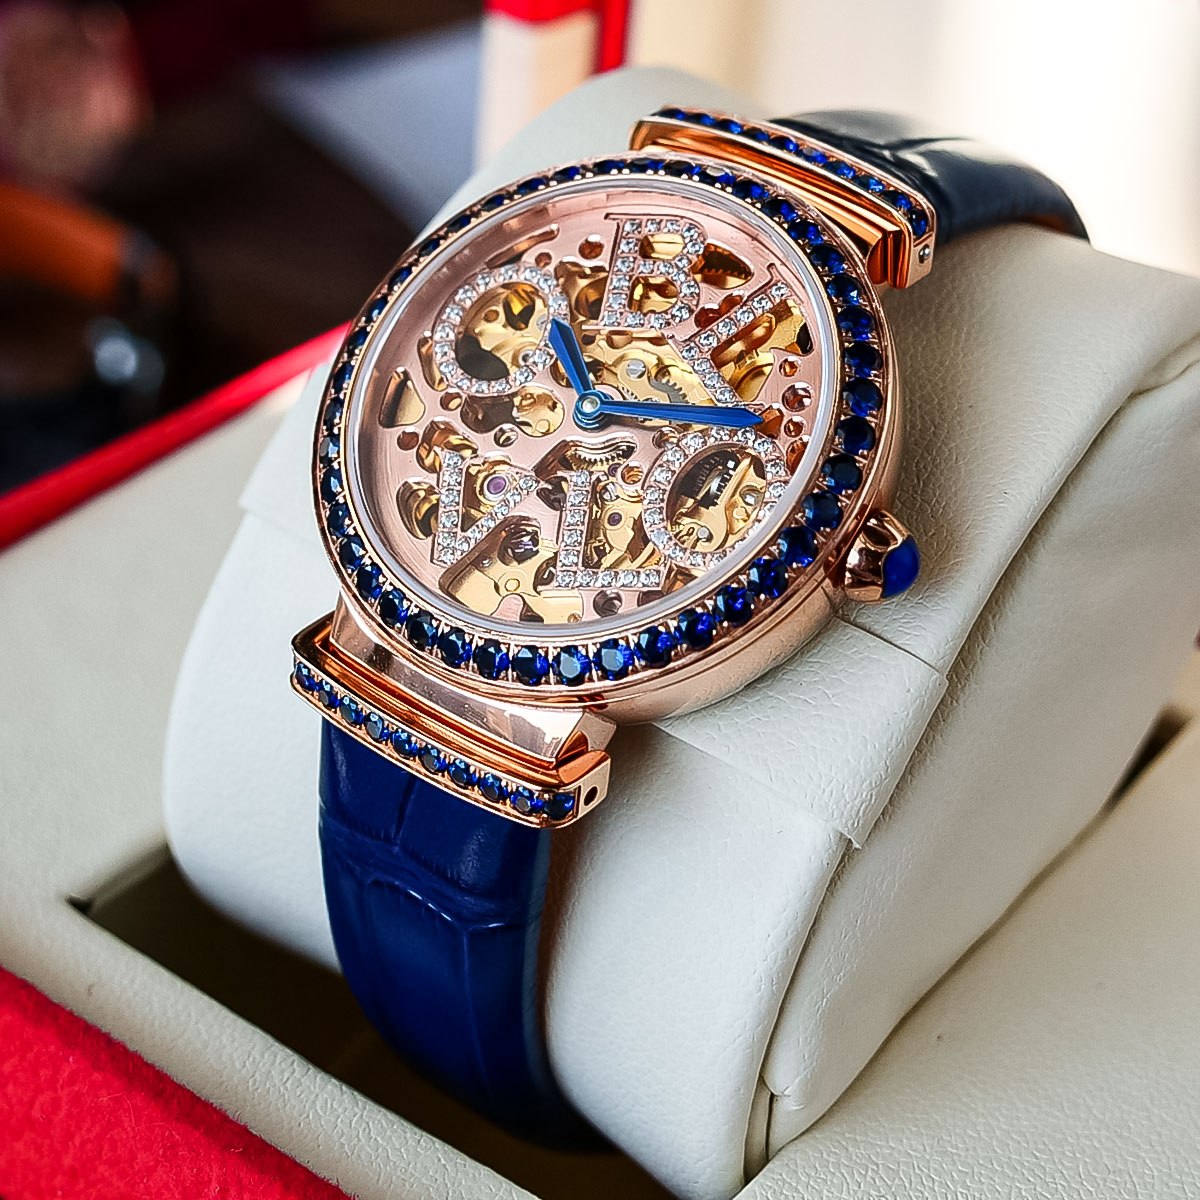 OBLVLO New Design Top Brand Luxury Women Fashion Automatic Watches Rose Gold  Female Wrist Watch Genuine Leather Strap enlarge